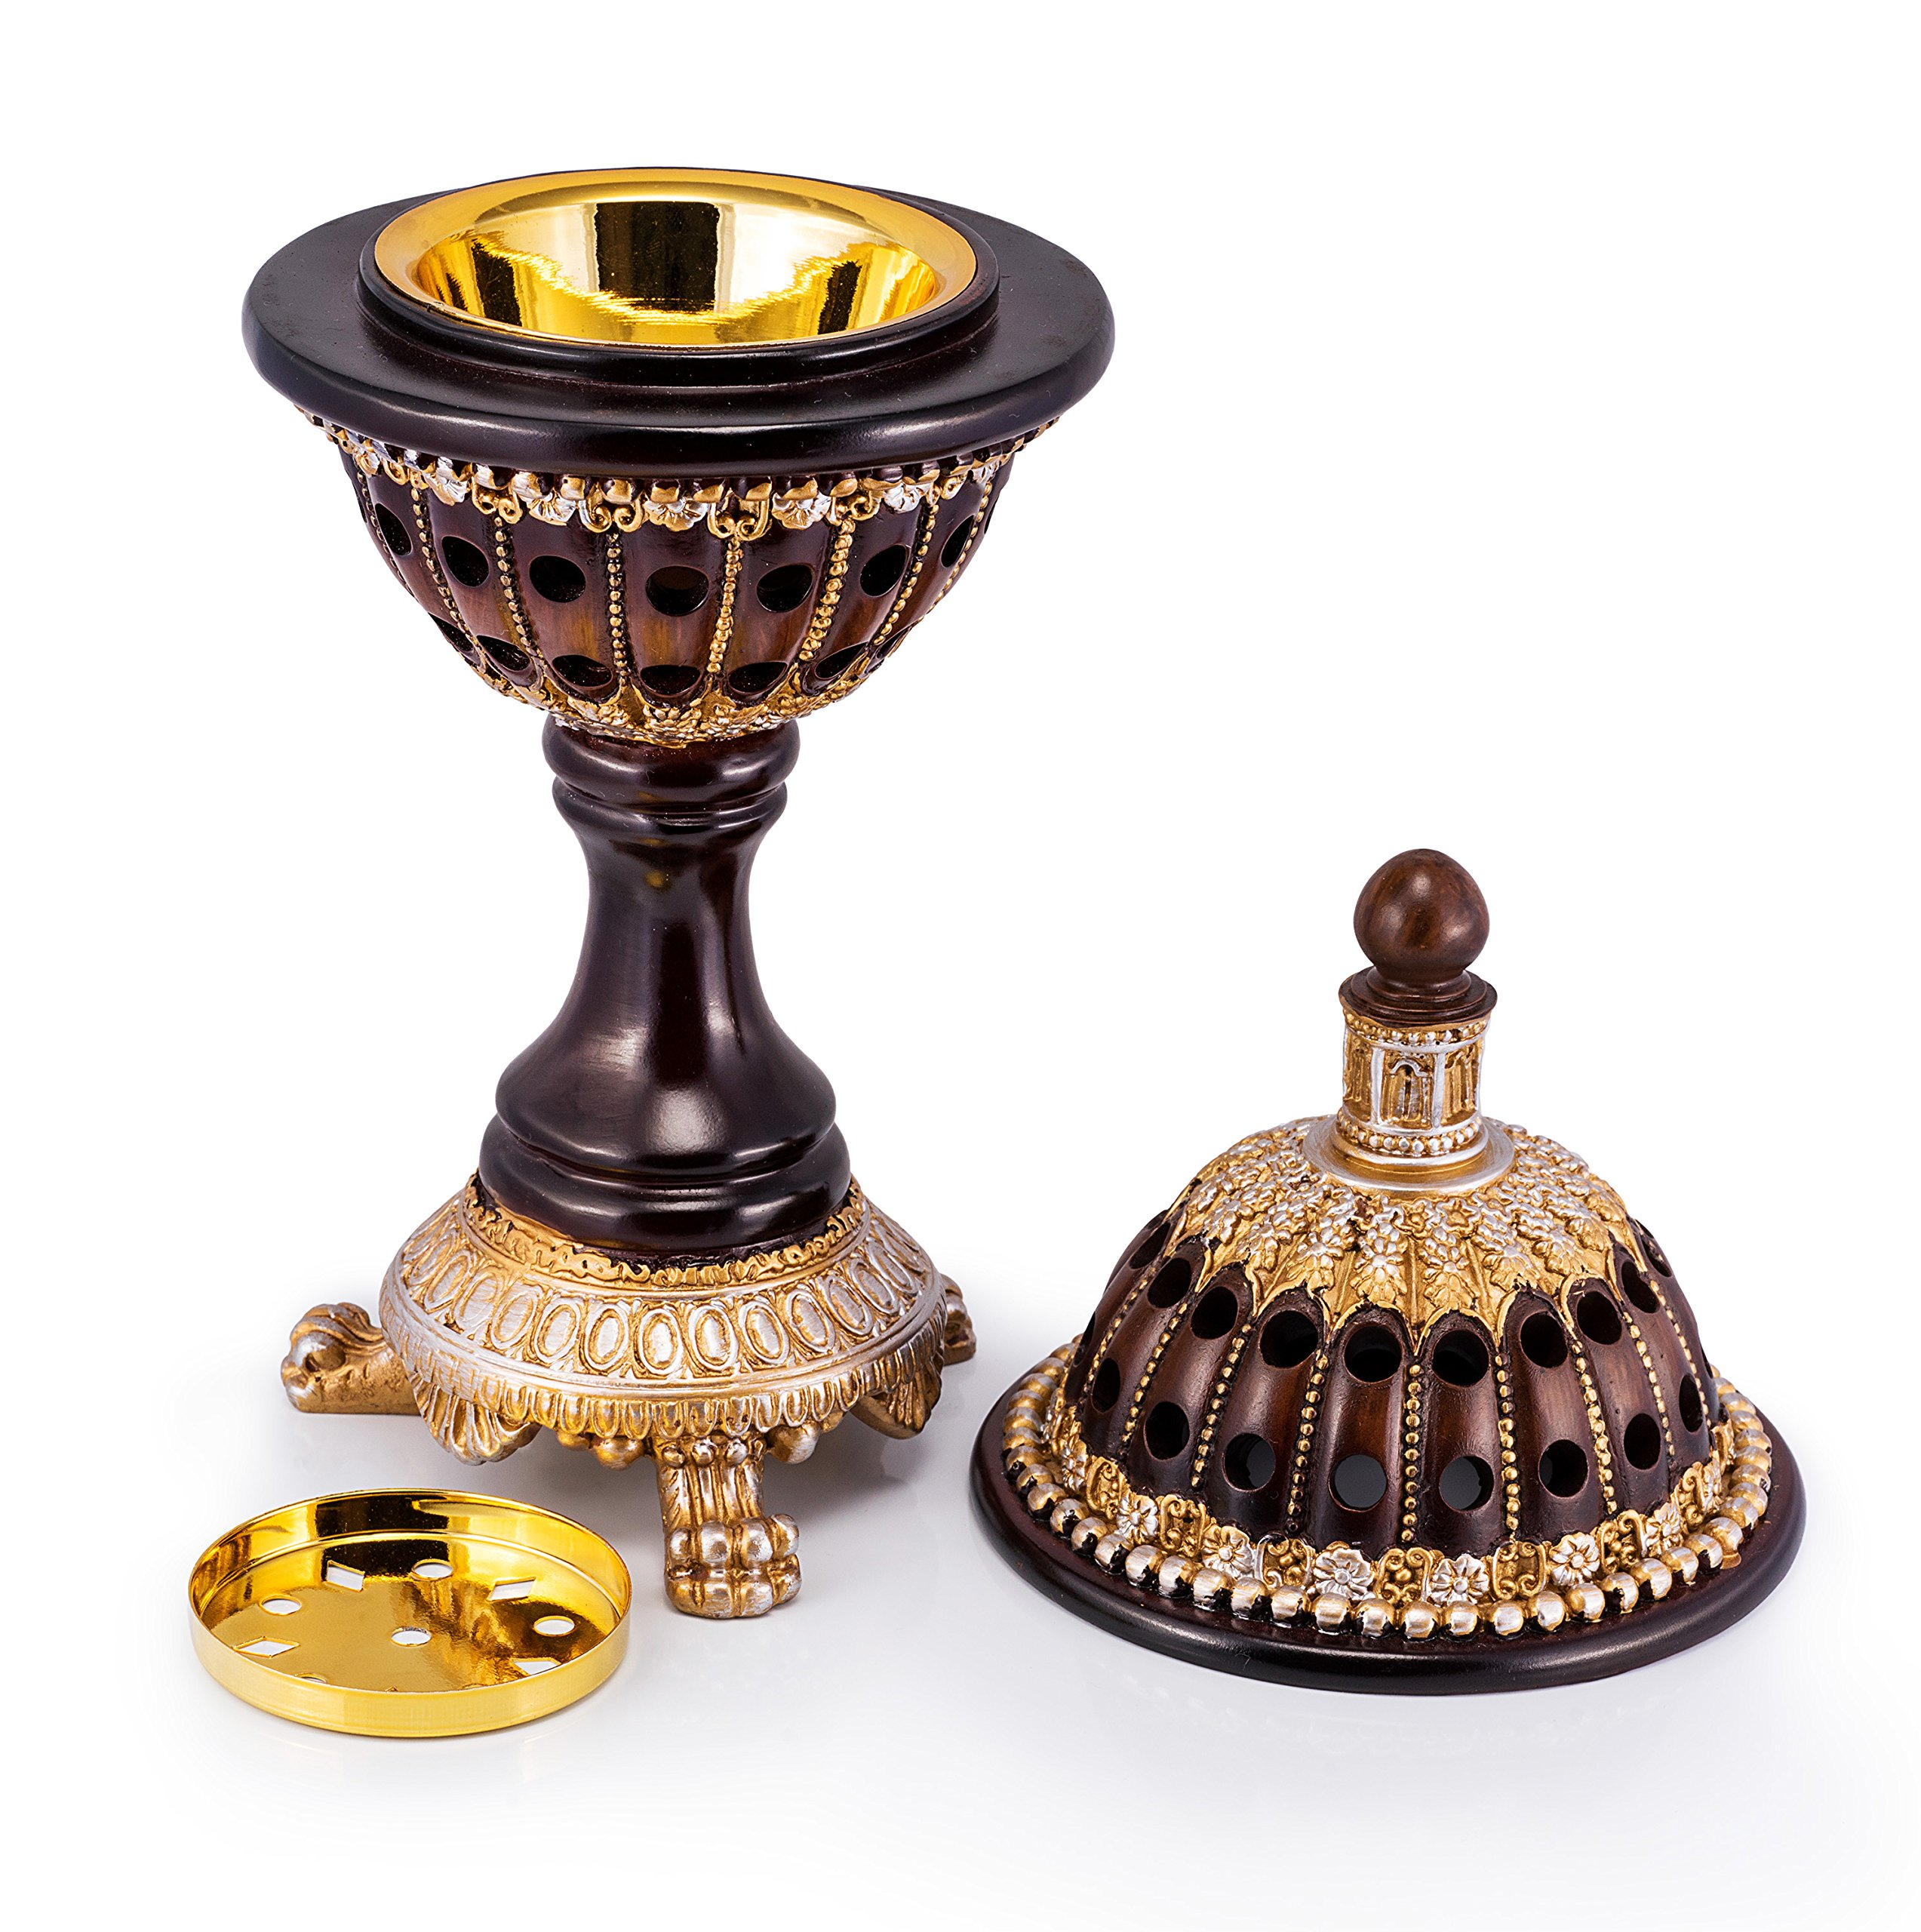 AM Incense Burner Frankincense Resin - Luxury Globe Charcoal Bakhoor Burners For Office & Home Decor by AM (Image #5)